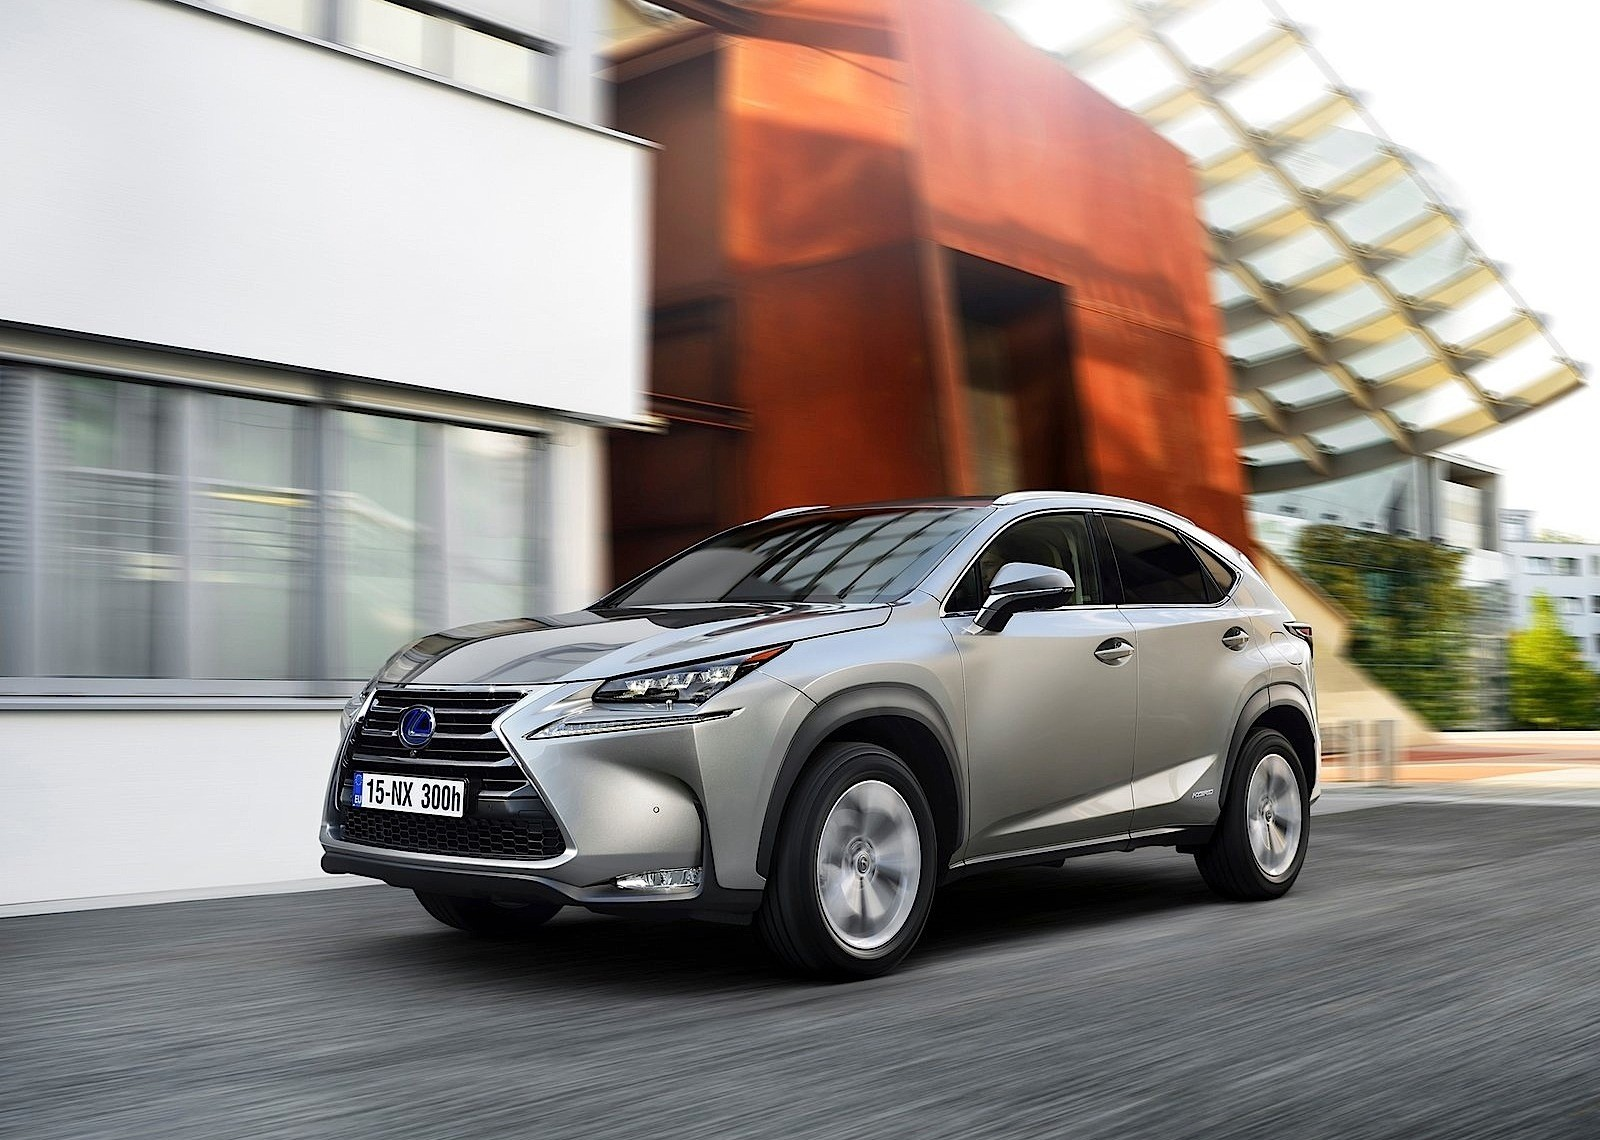 lexus nx specs 2014 2015 2016 2017 autoevolution. Black Bedroom Furniture Sets. Home Design Ideas